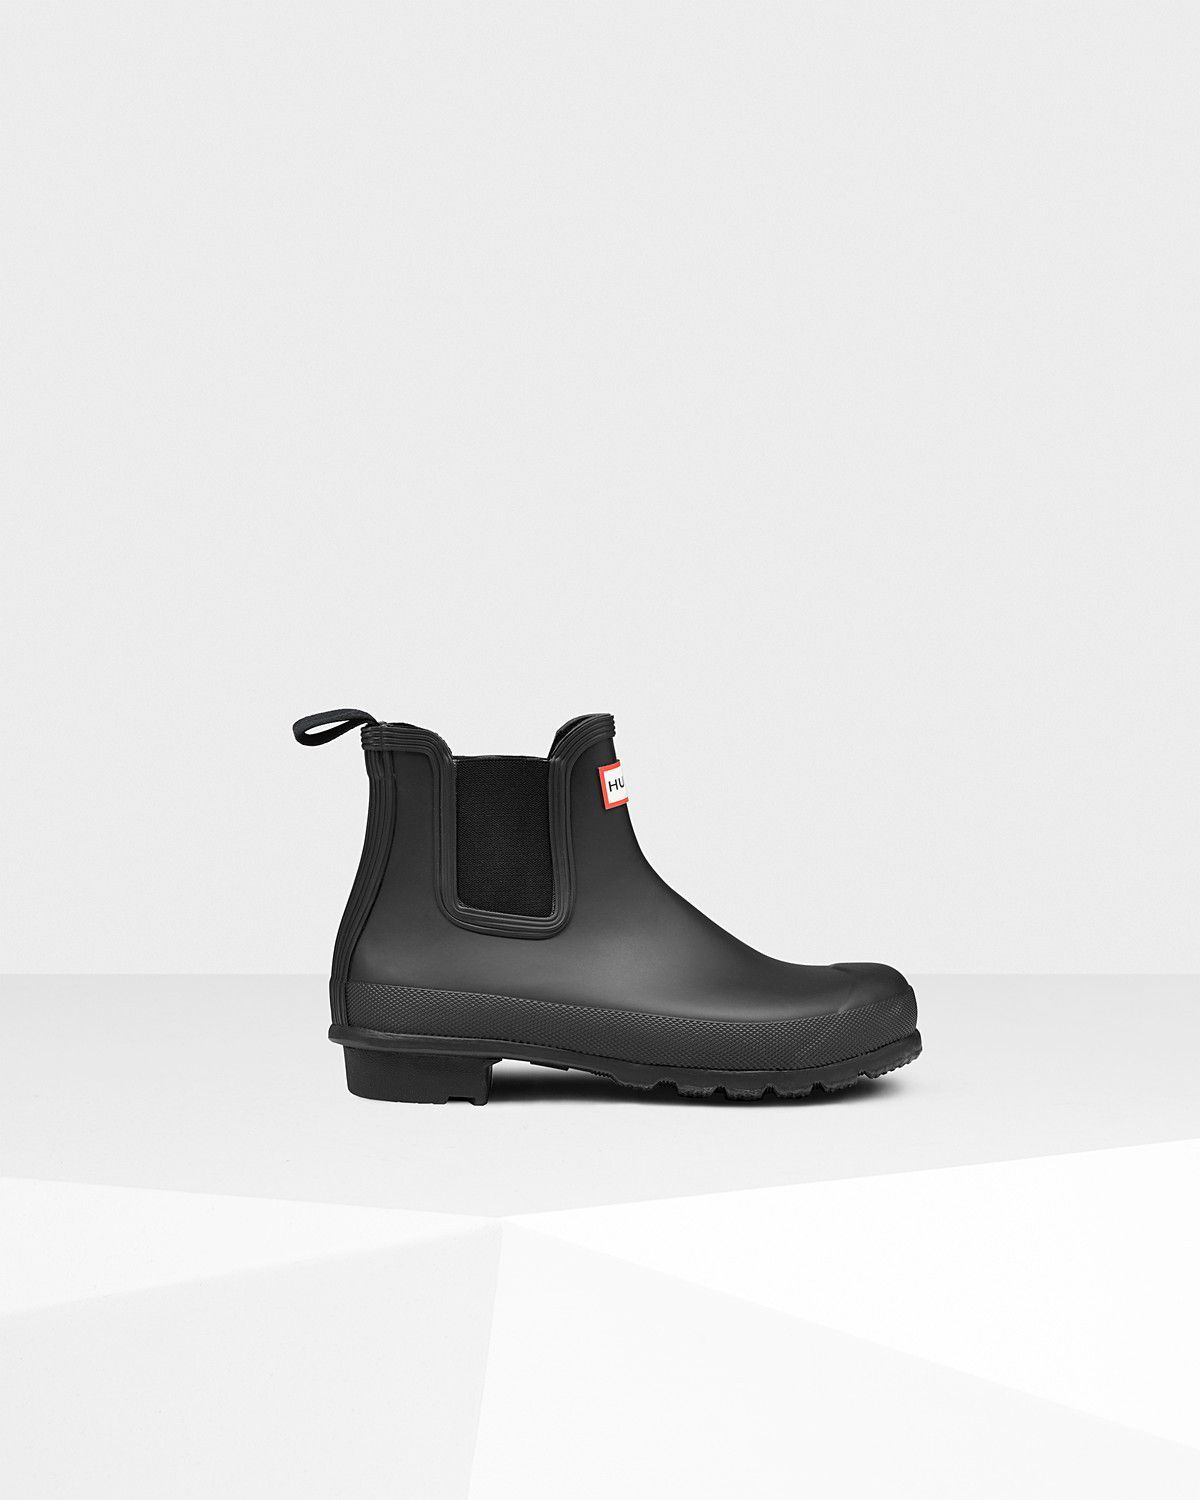 A new interpretation of a classic style, this handcrafted women's Chelsea  boot is made from